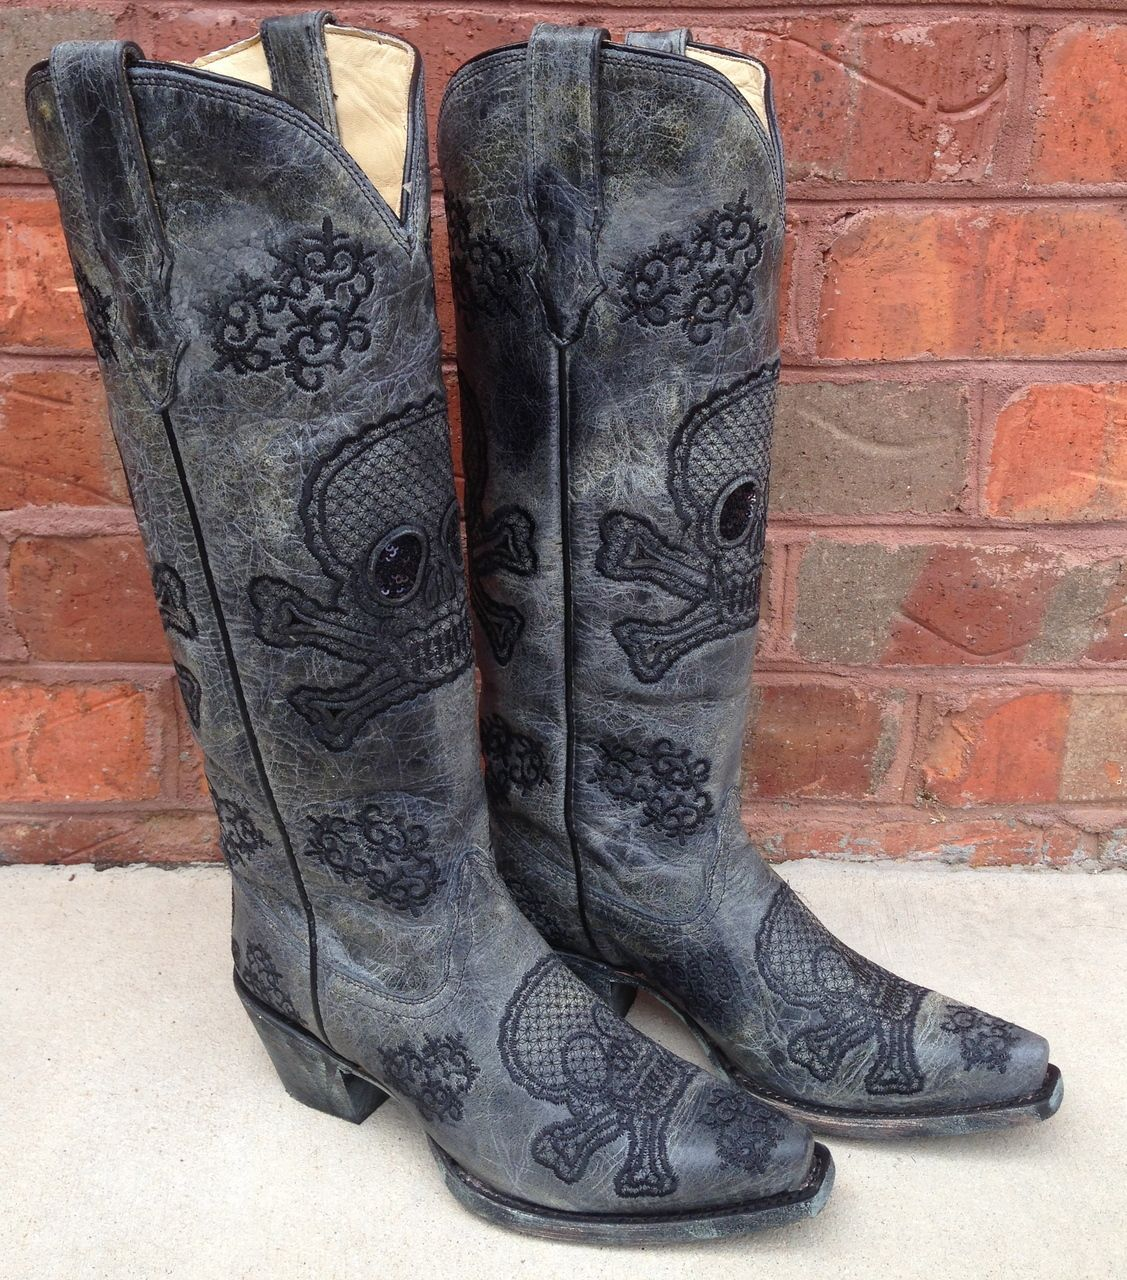 Corral Black Tall Sequence Skulls Boots R1078 | Skulls, Sequences ...